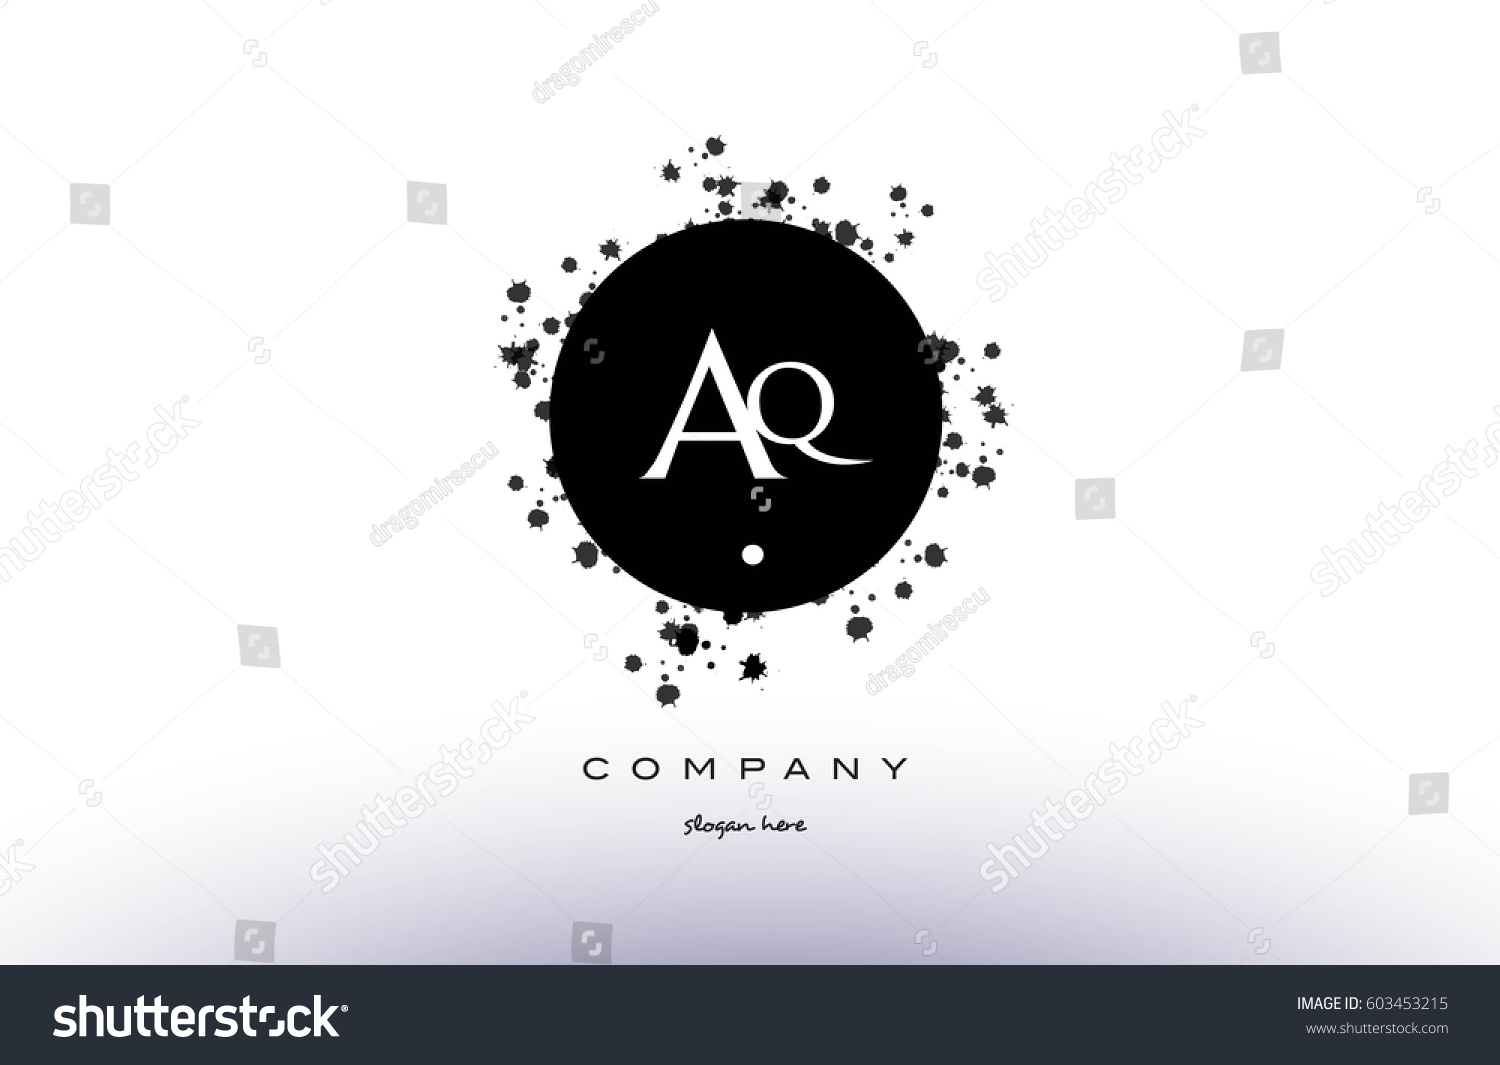 aq a q black white circle grunge splash vintage retro alphabet company logo  design vector icon template